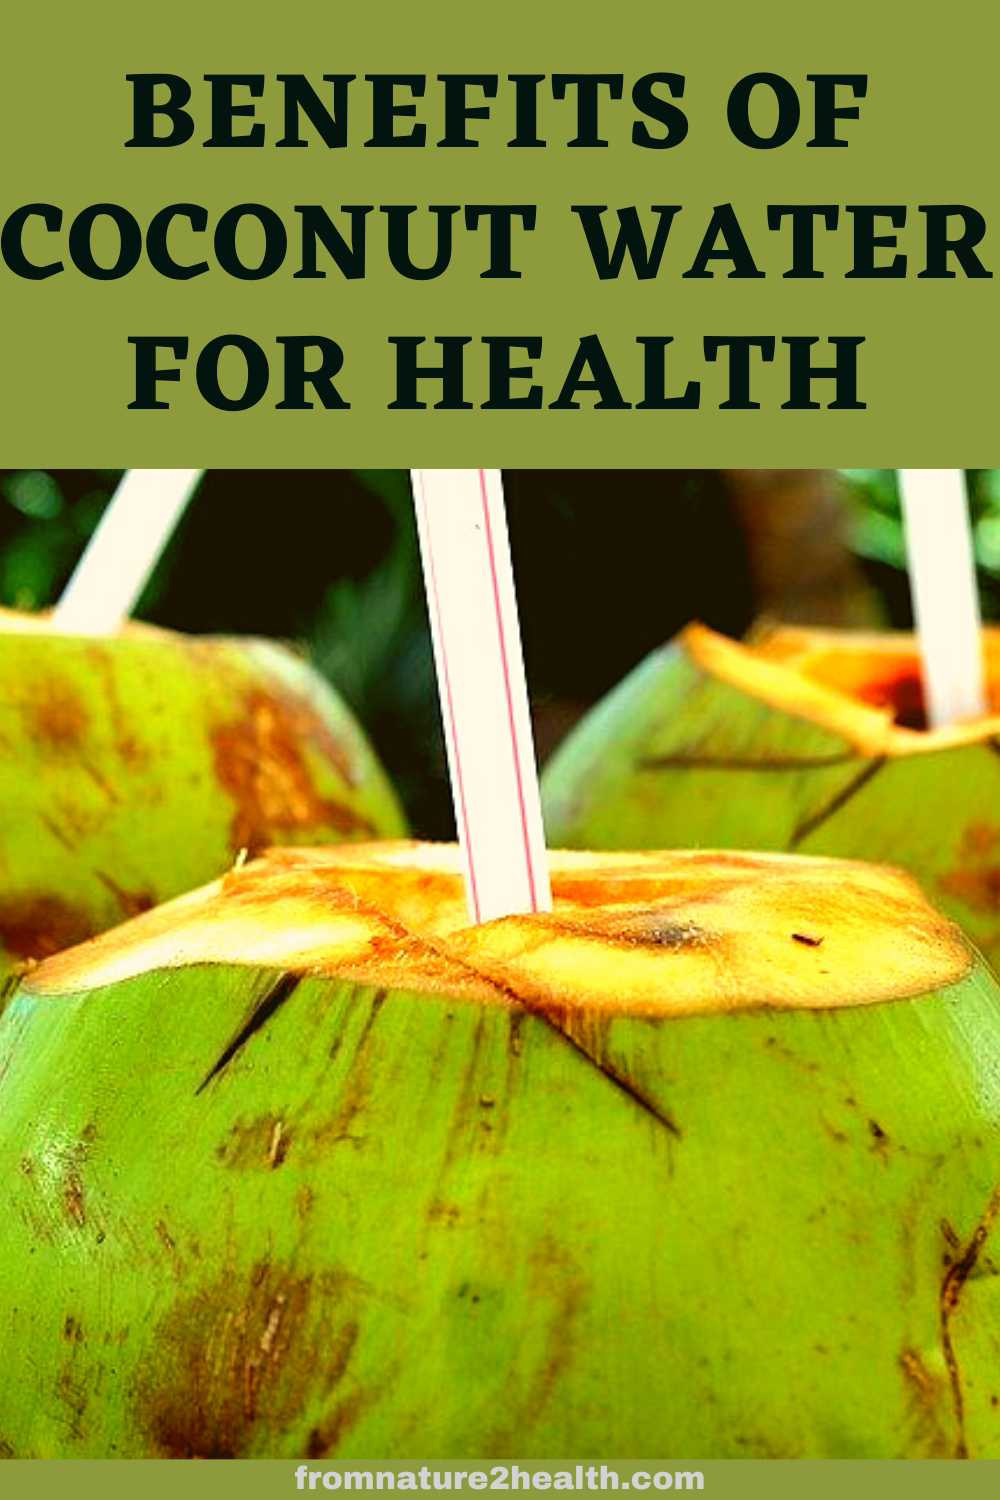 Benefits of Coconut Water for Health